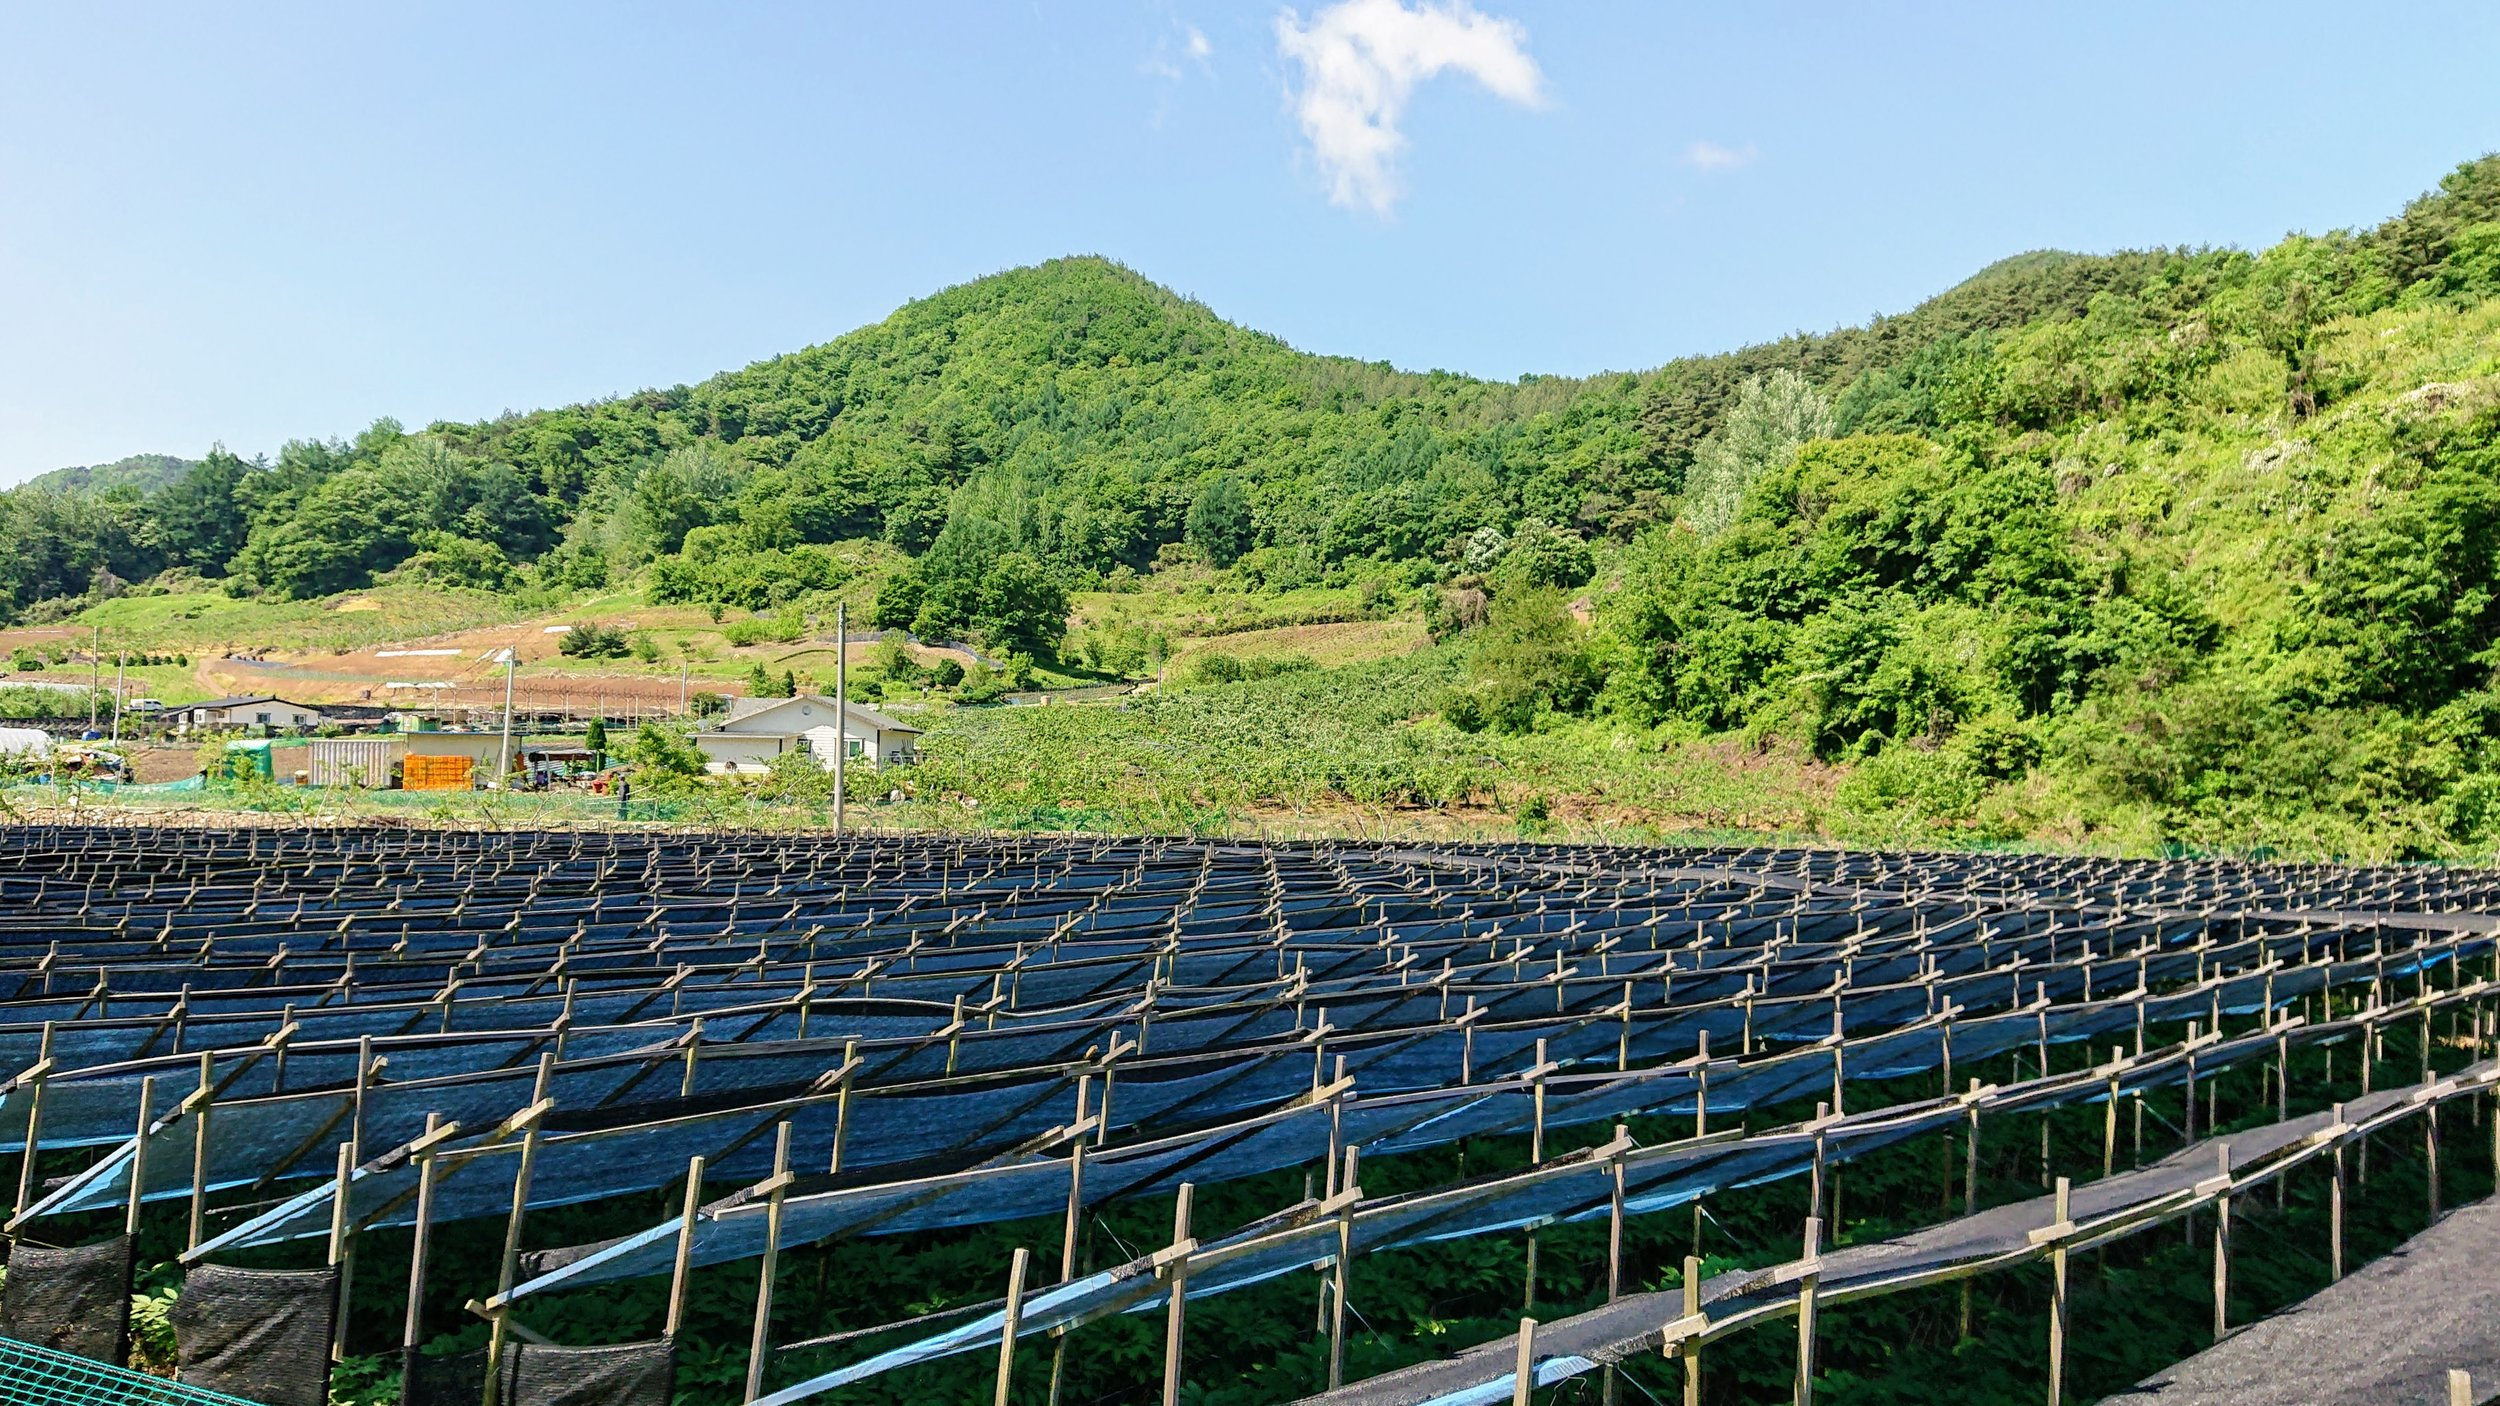 At first, we thought these were solar panels. Upon closer inspection, we realised that it was shade for the crops that had been built by hand.